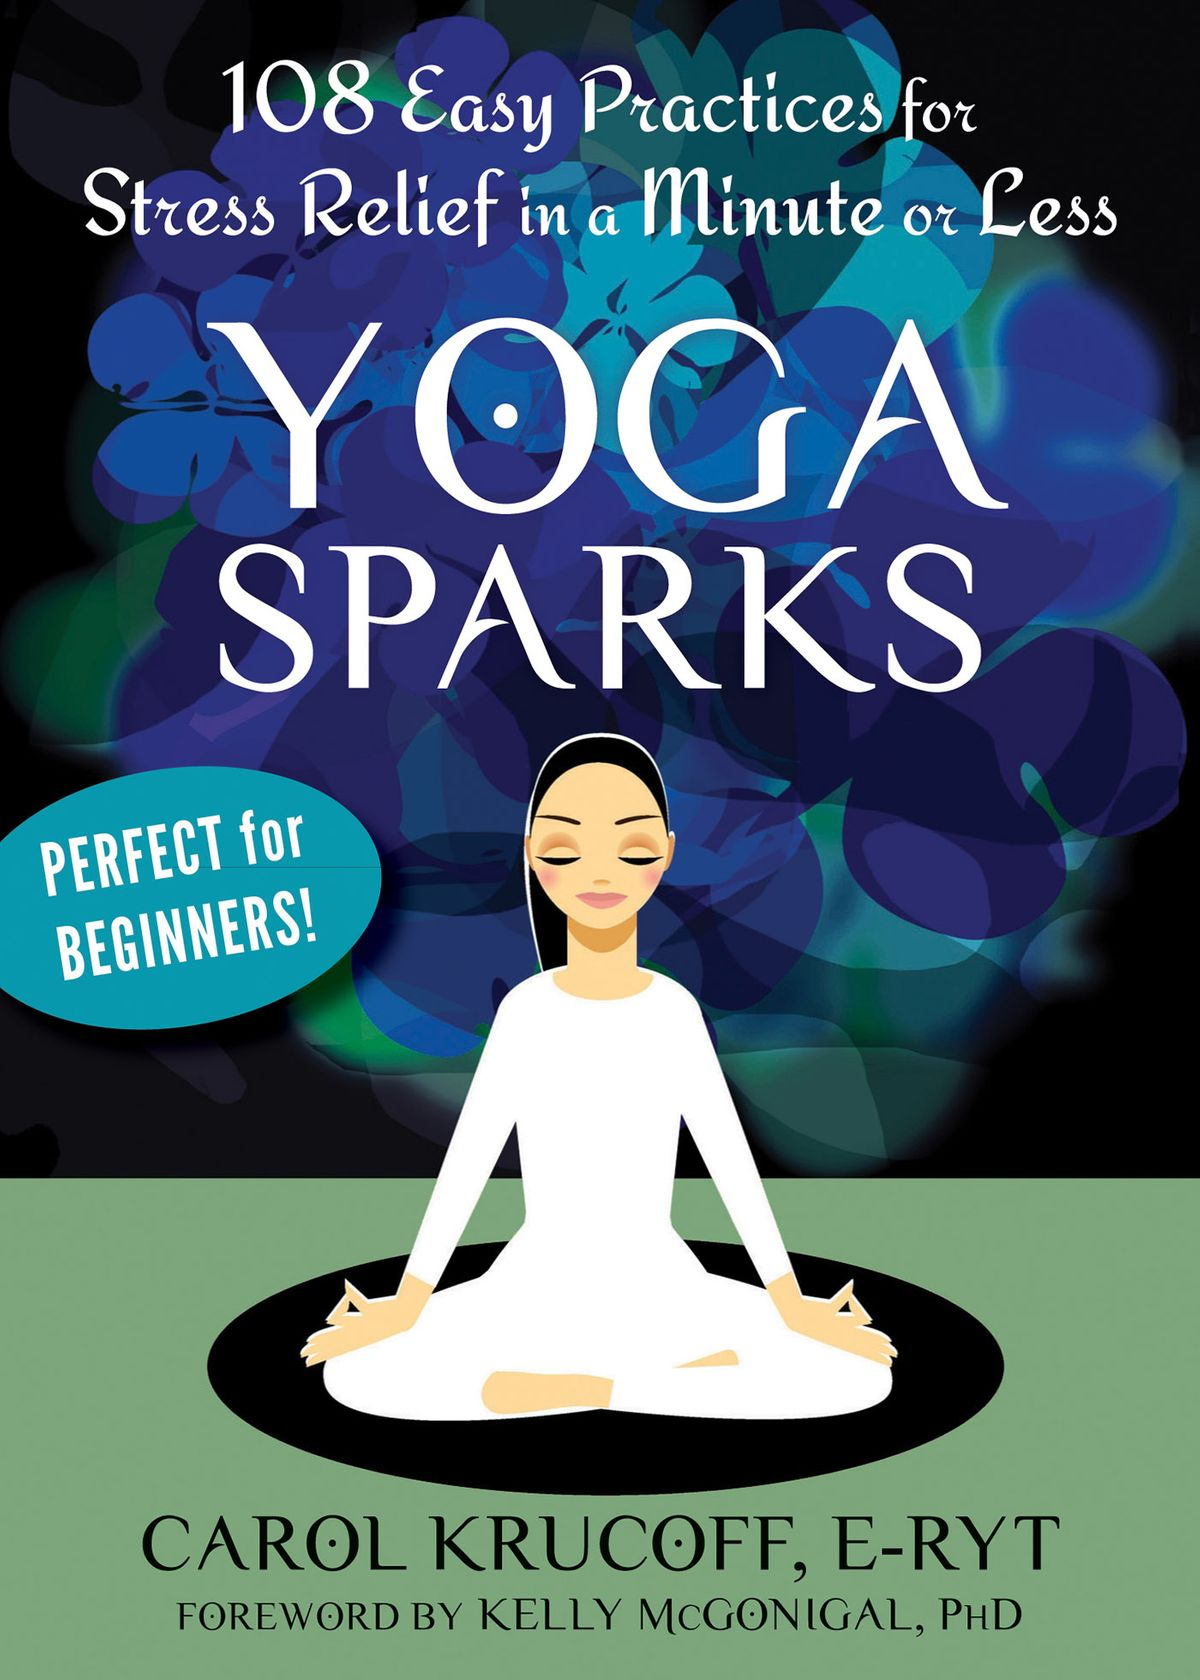 Yoga sparks : 108 easy practices for stress relief in a minute or less / Carol Krucoff, E-RYT